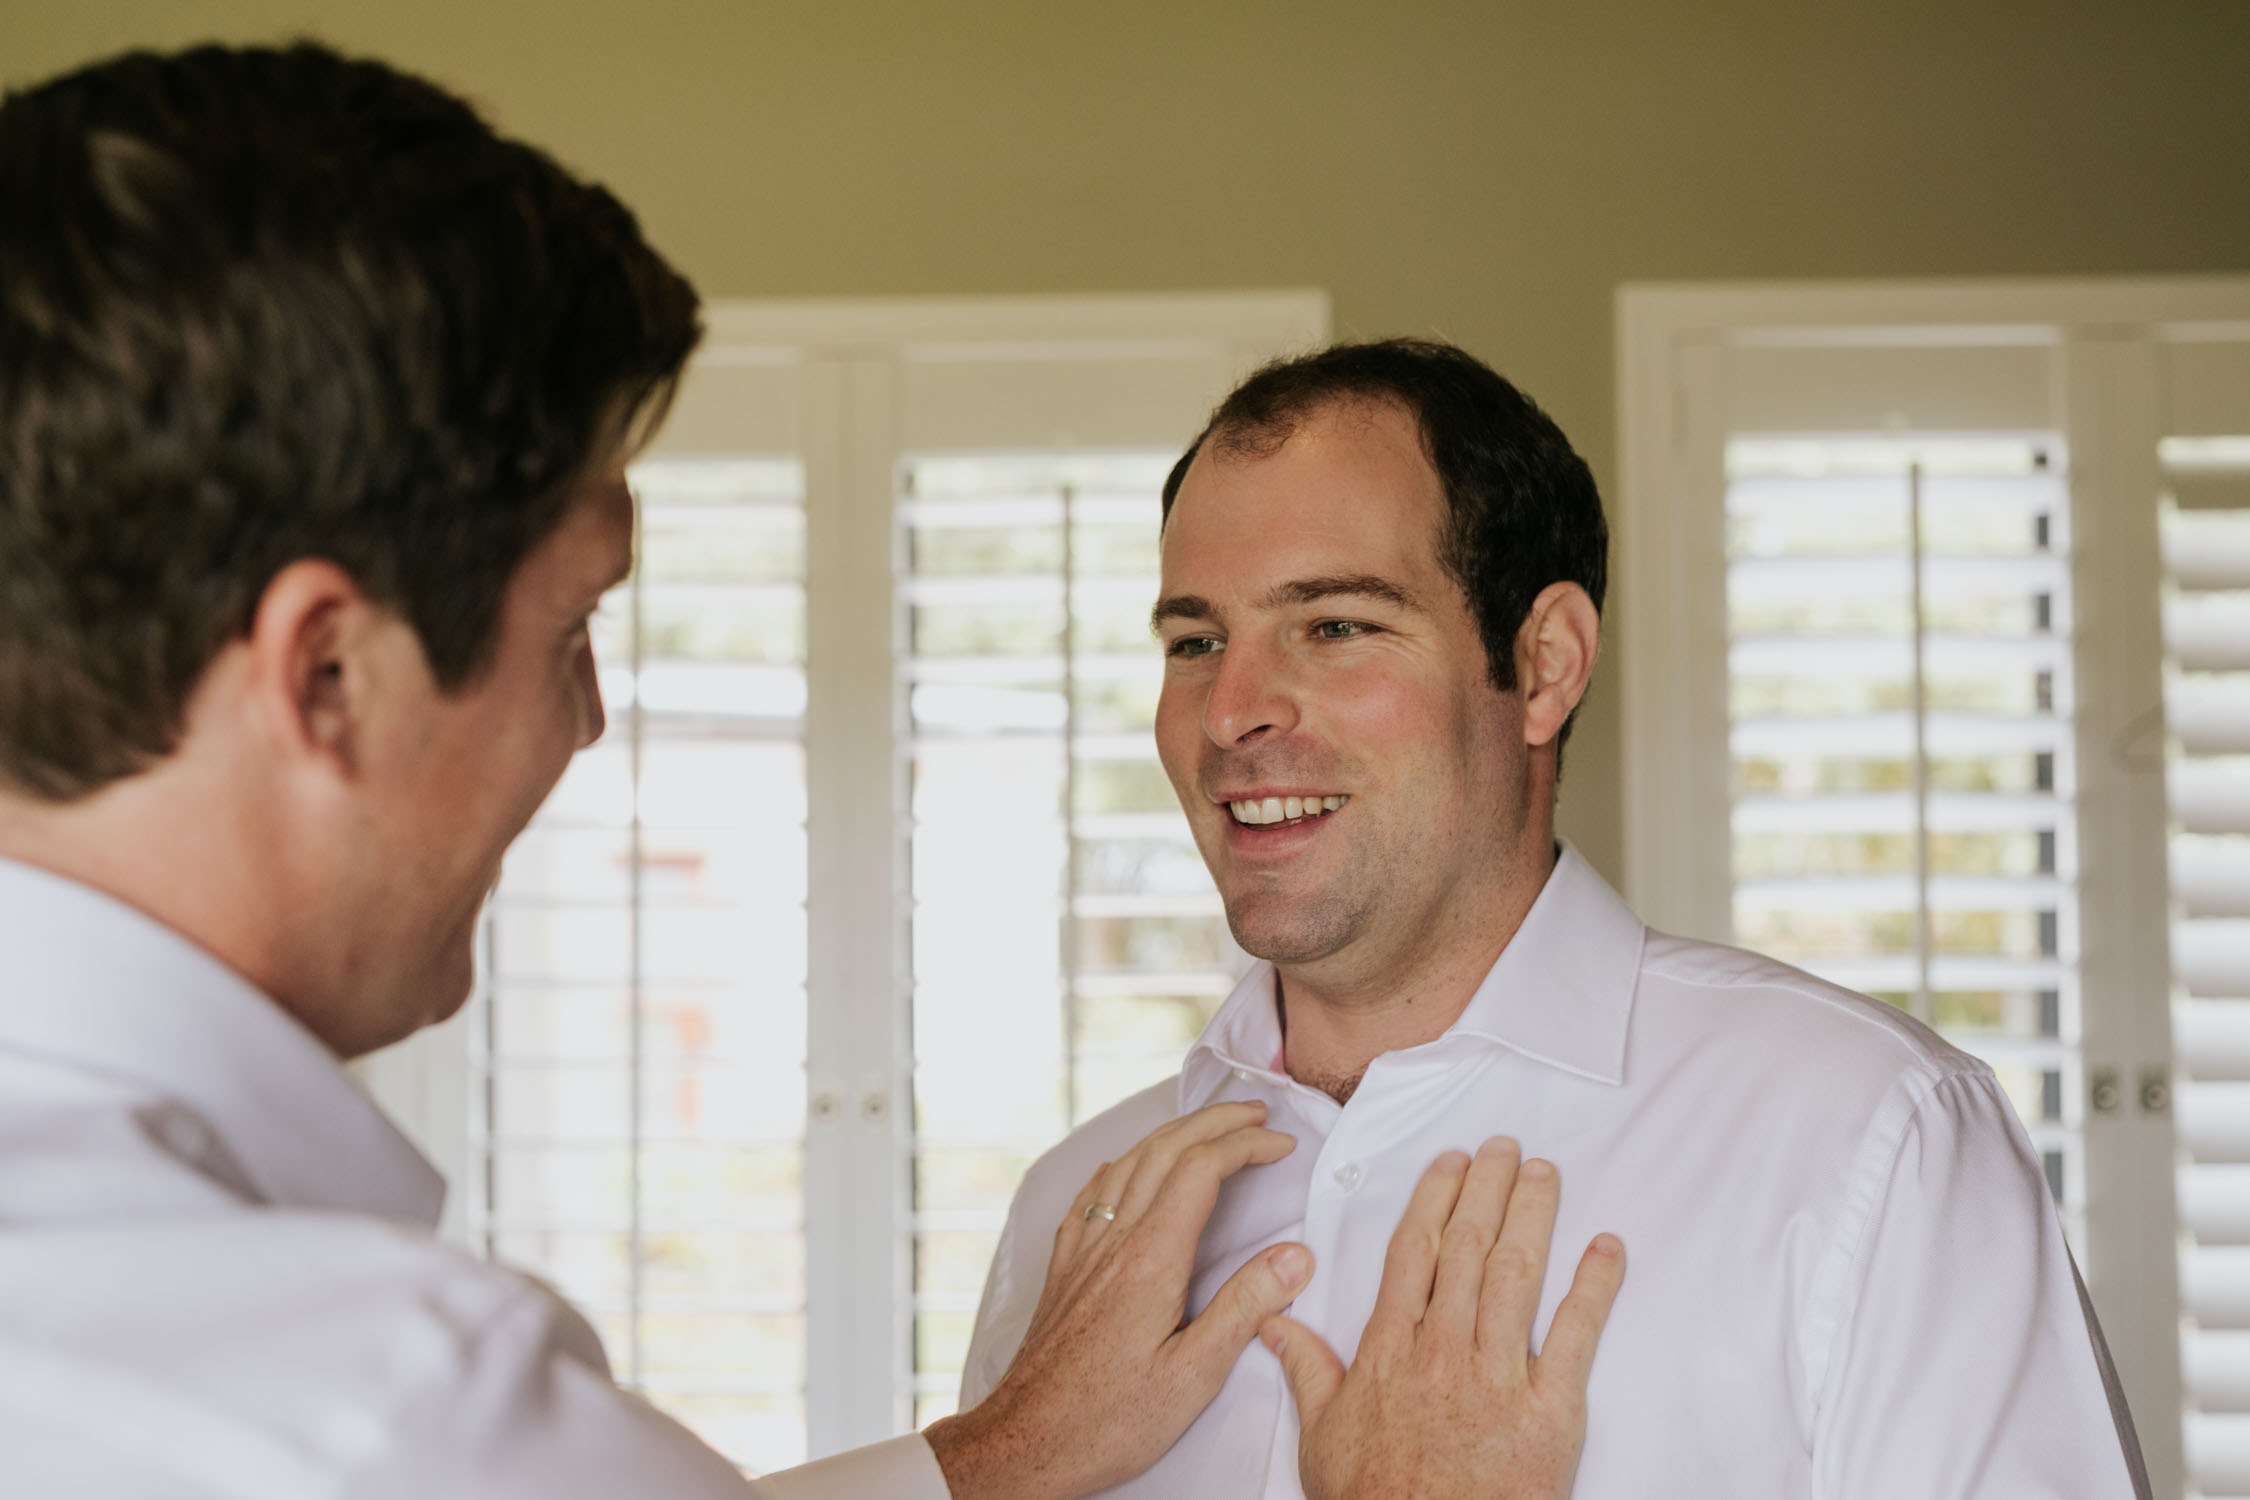 Groom wearing a white shirt smiling and having a real moment with his friend while getting dressed on his wedding day